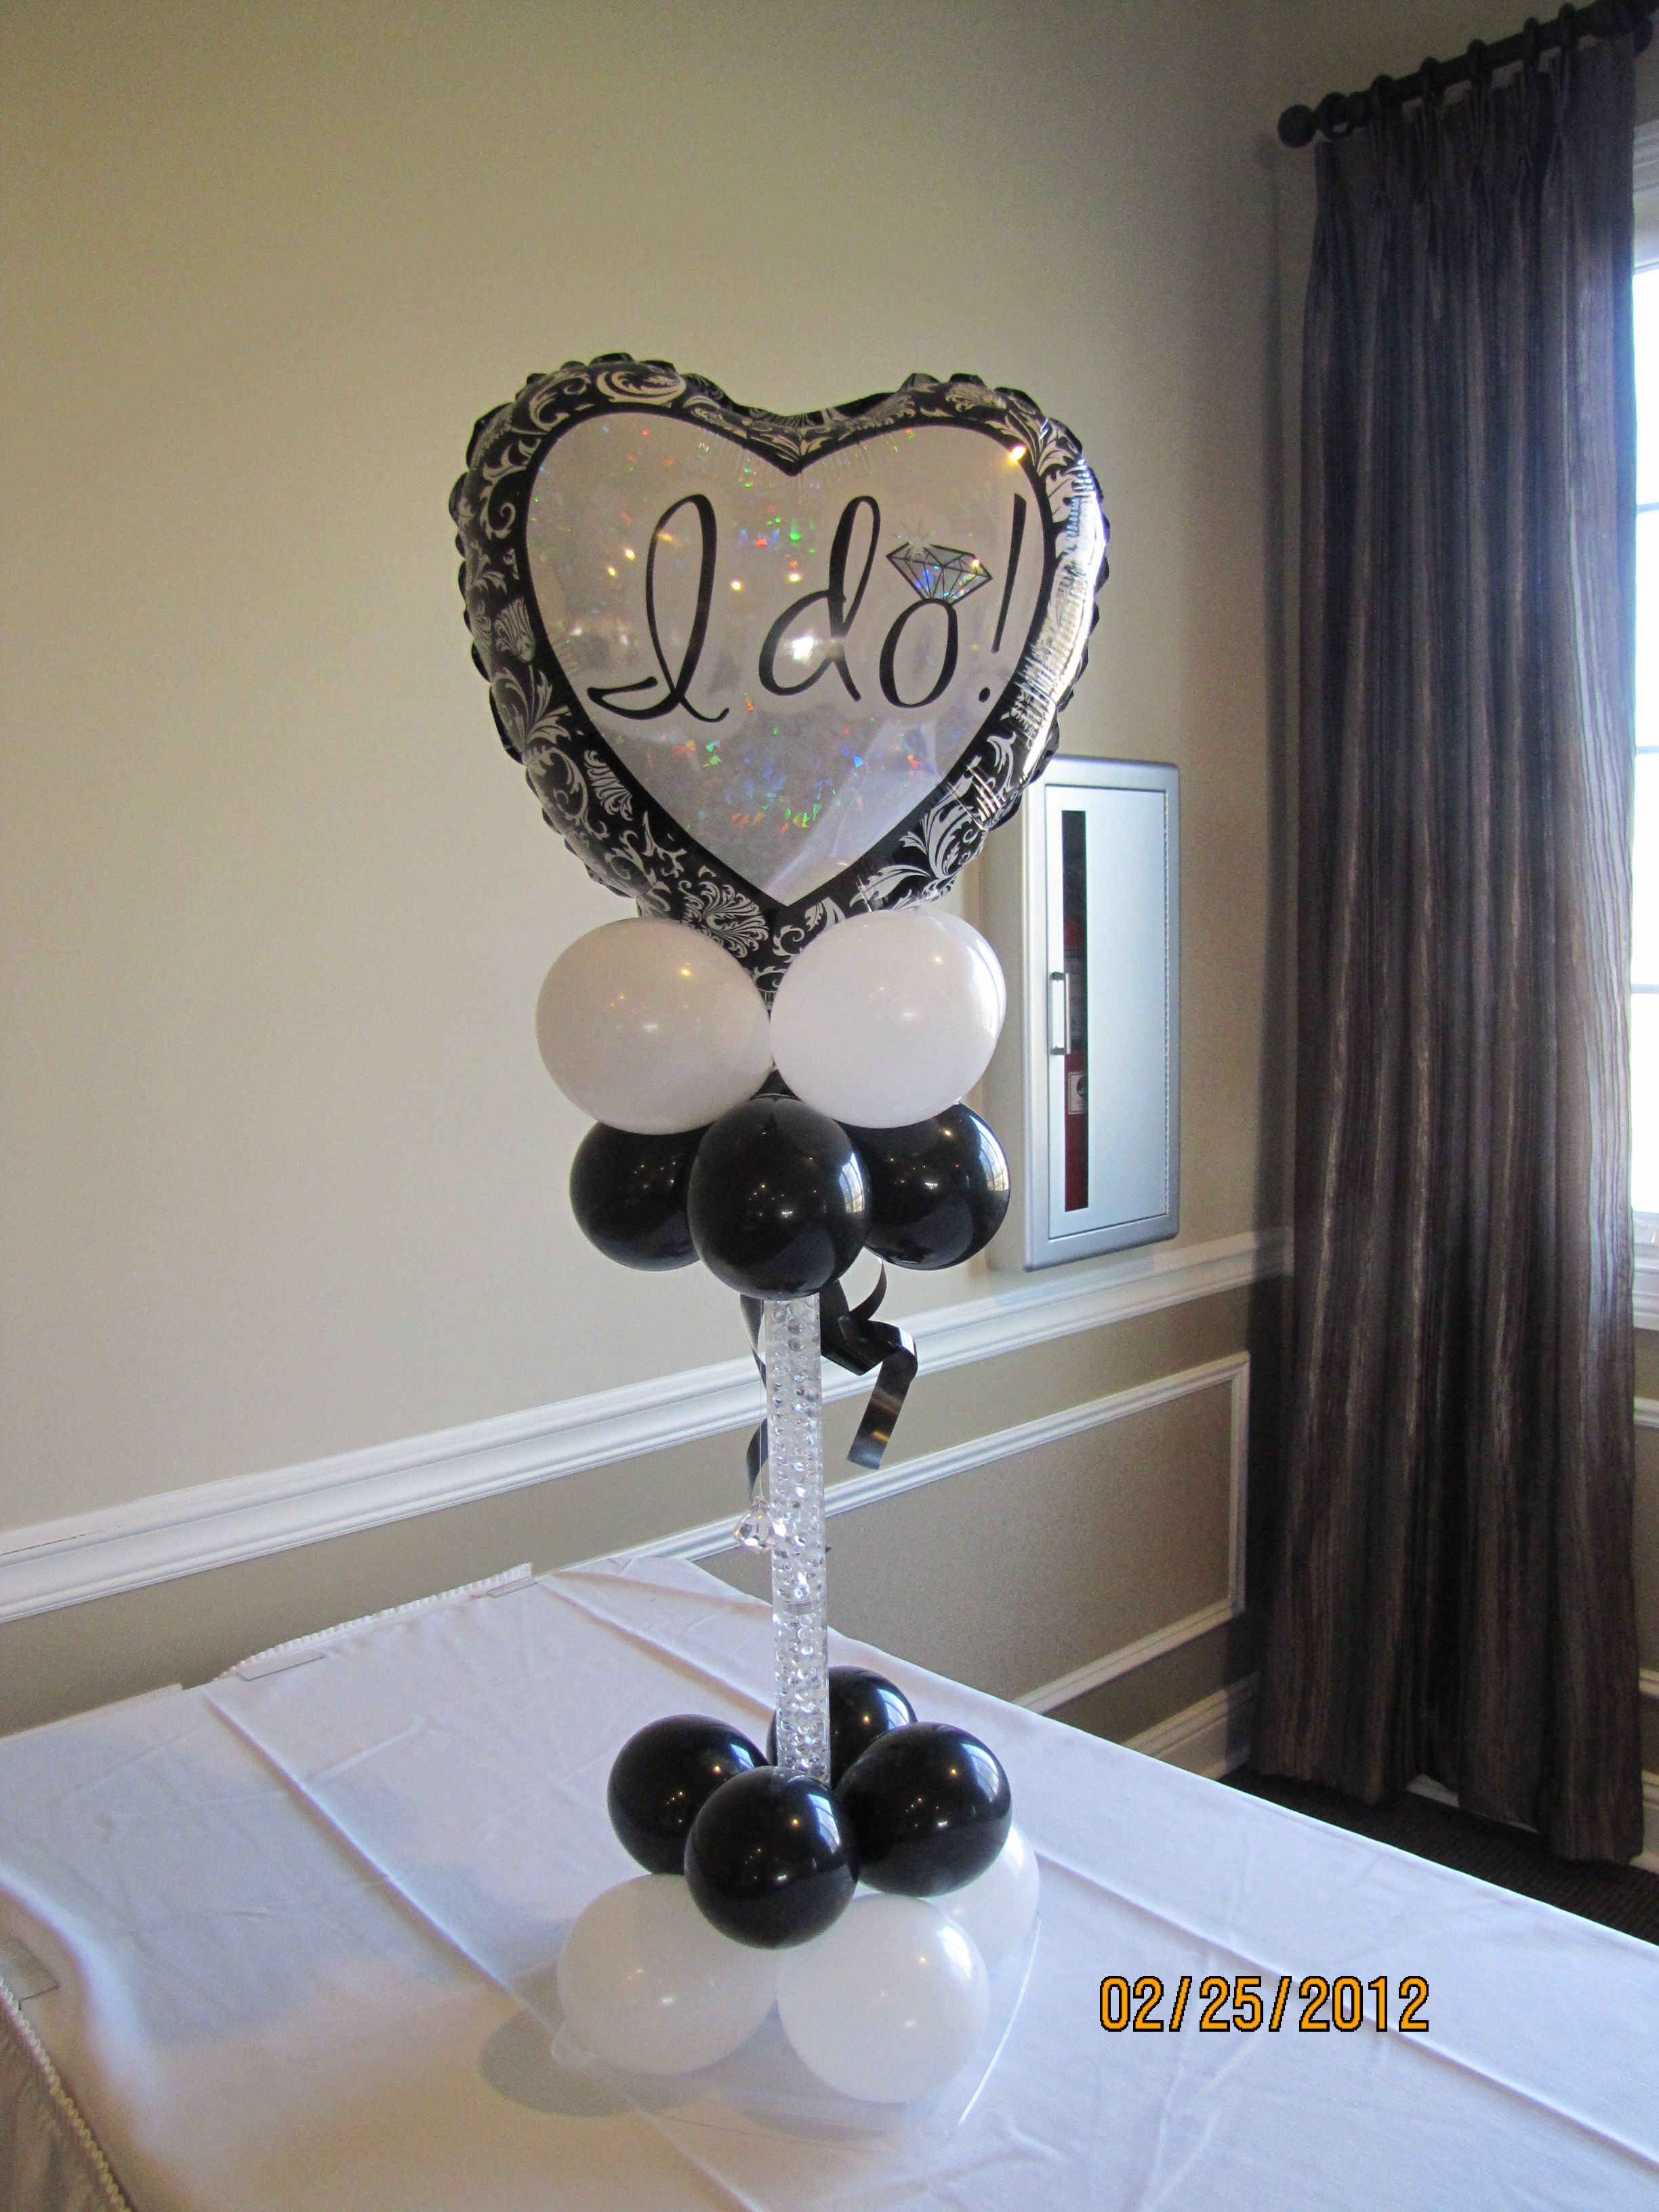 Black And White Wedding Balloons With Sayings - Black And